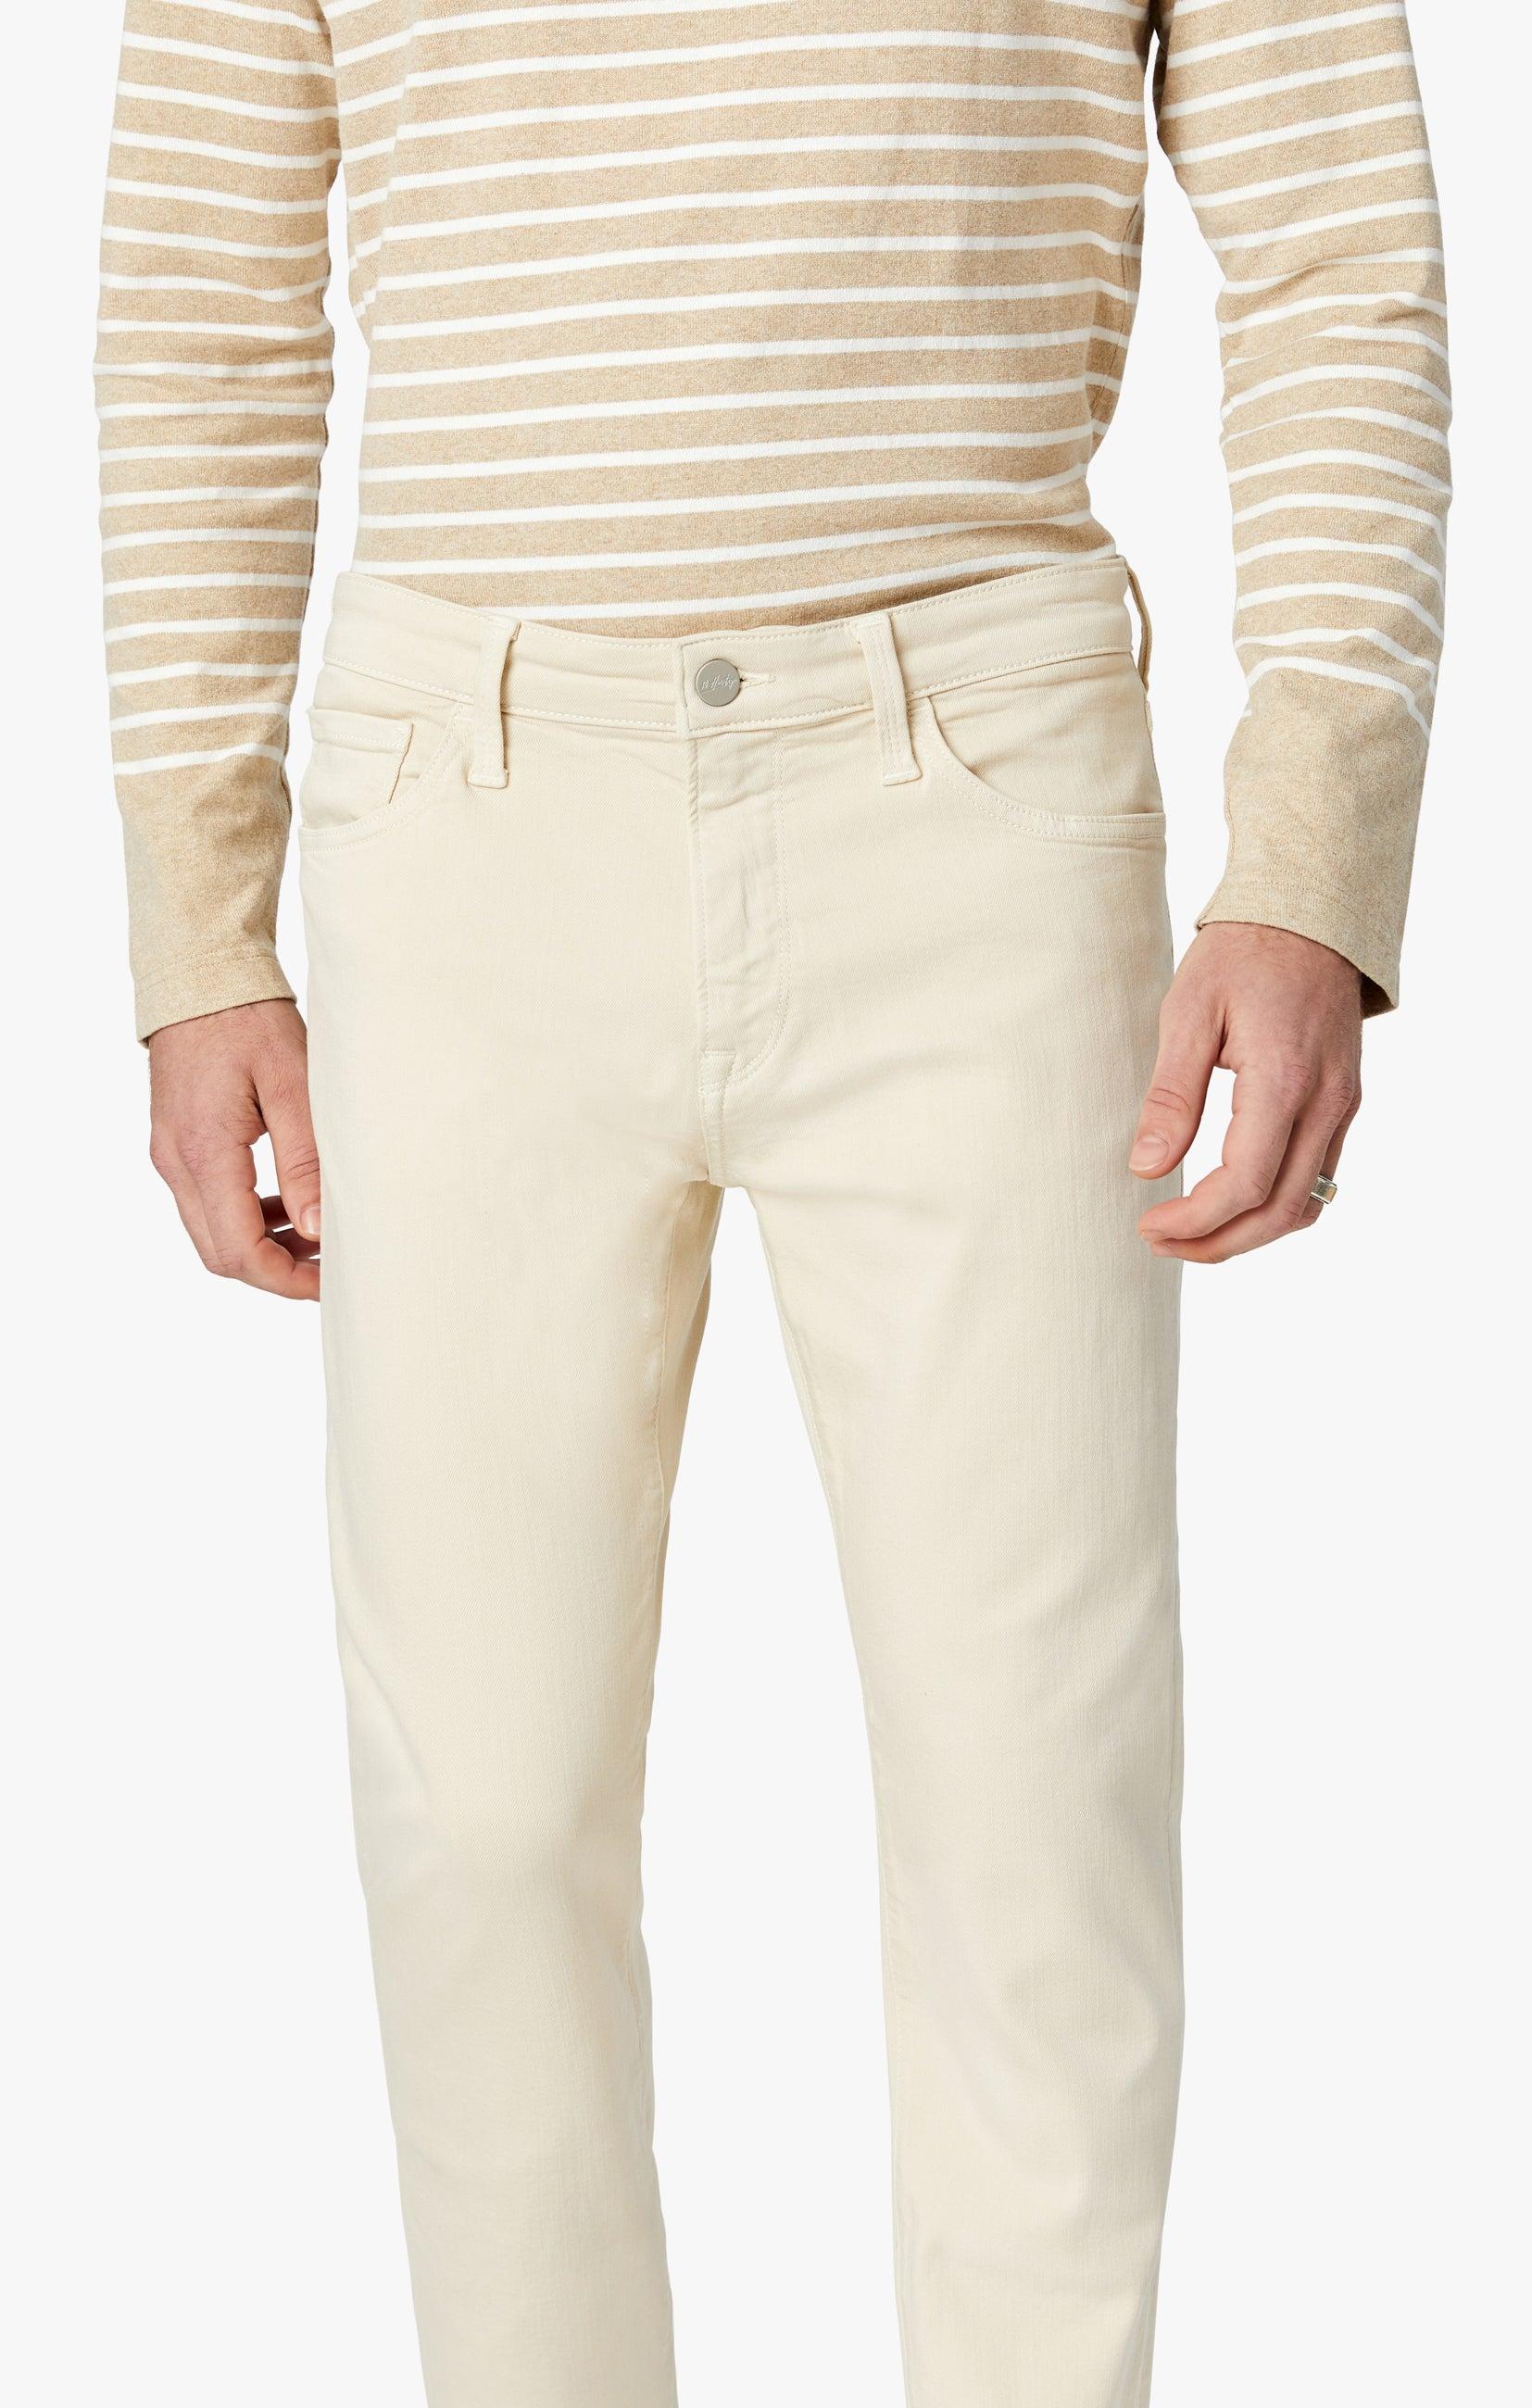 Cool Tapered Leg Pants In Natural Comfort Image 7